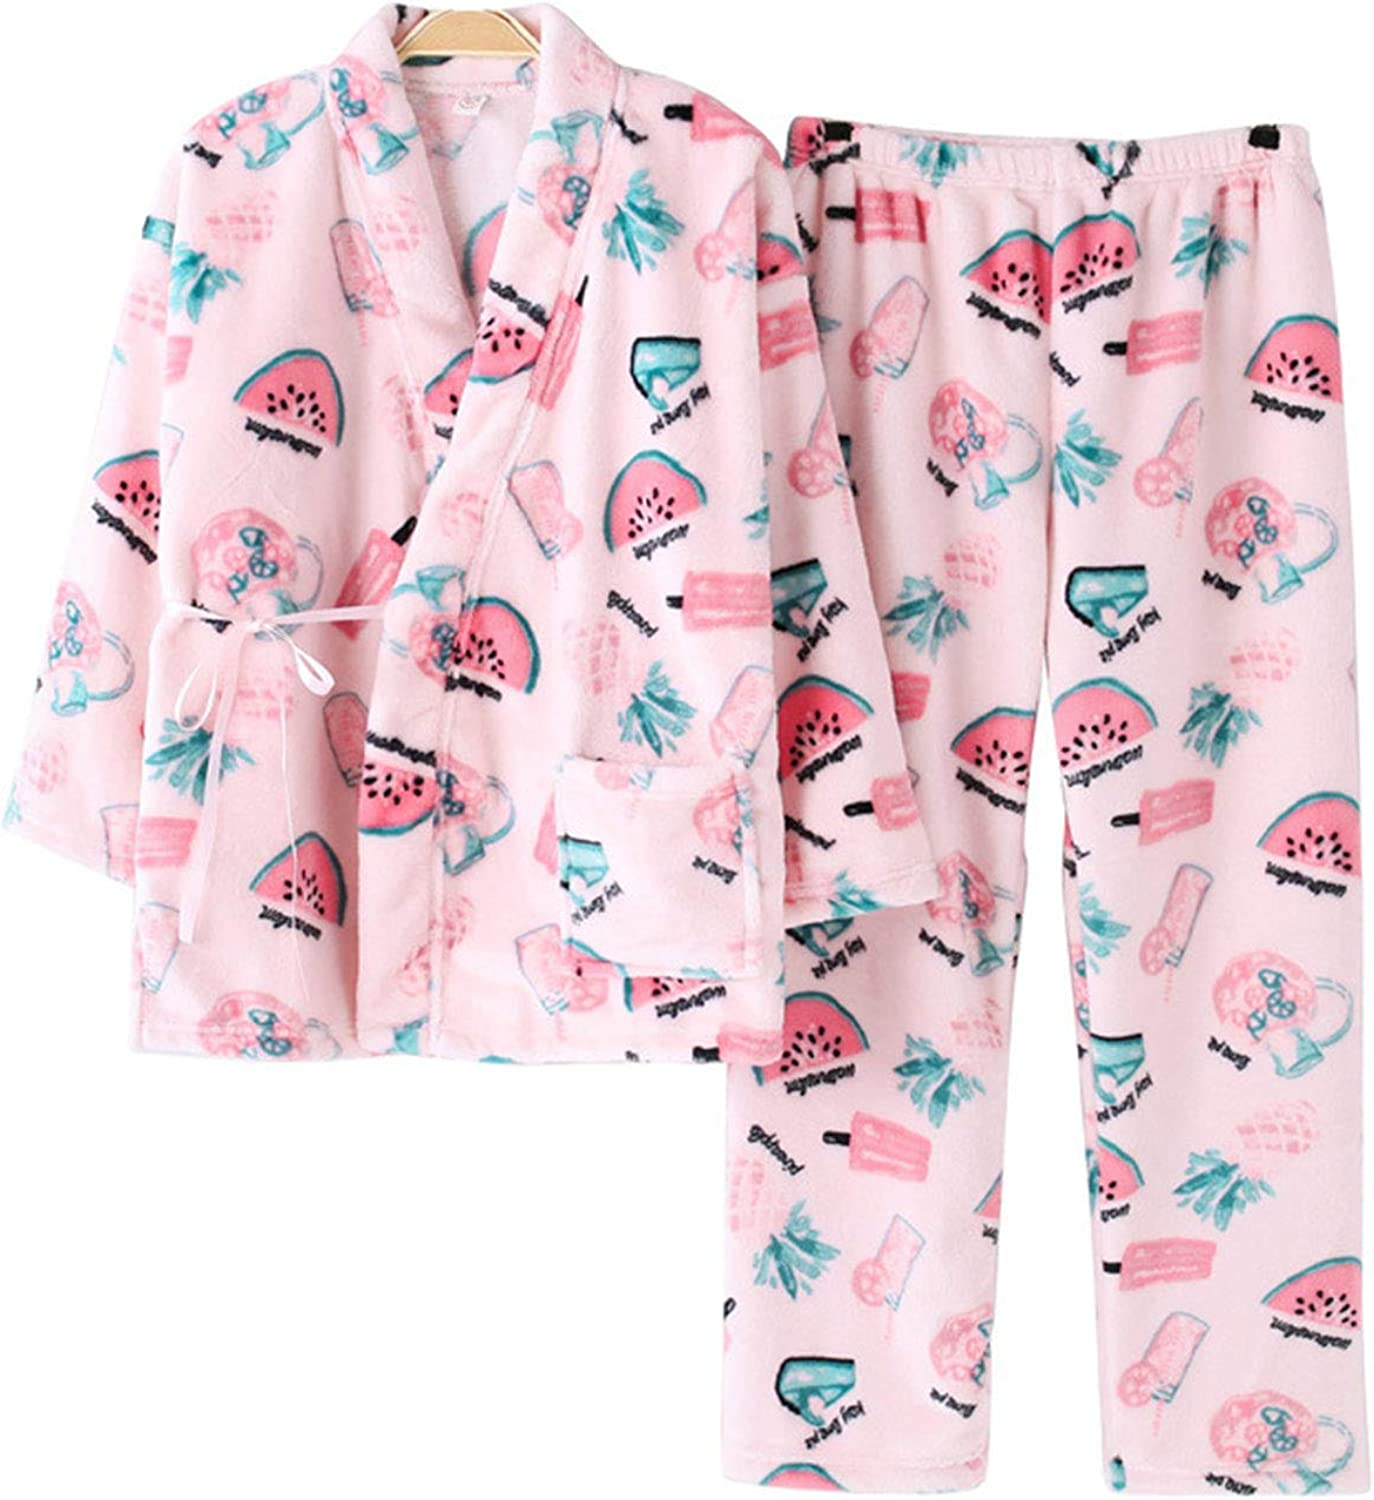 AIBAB Winter Flannel Pajamas Plus Velvet Thickening Kimono Bathrobe Coral Velvet Home Service Suit